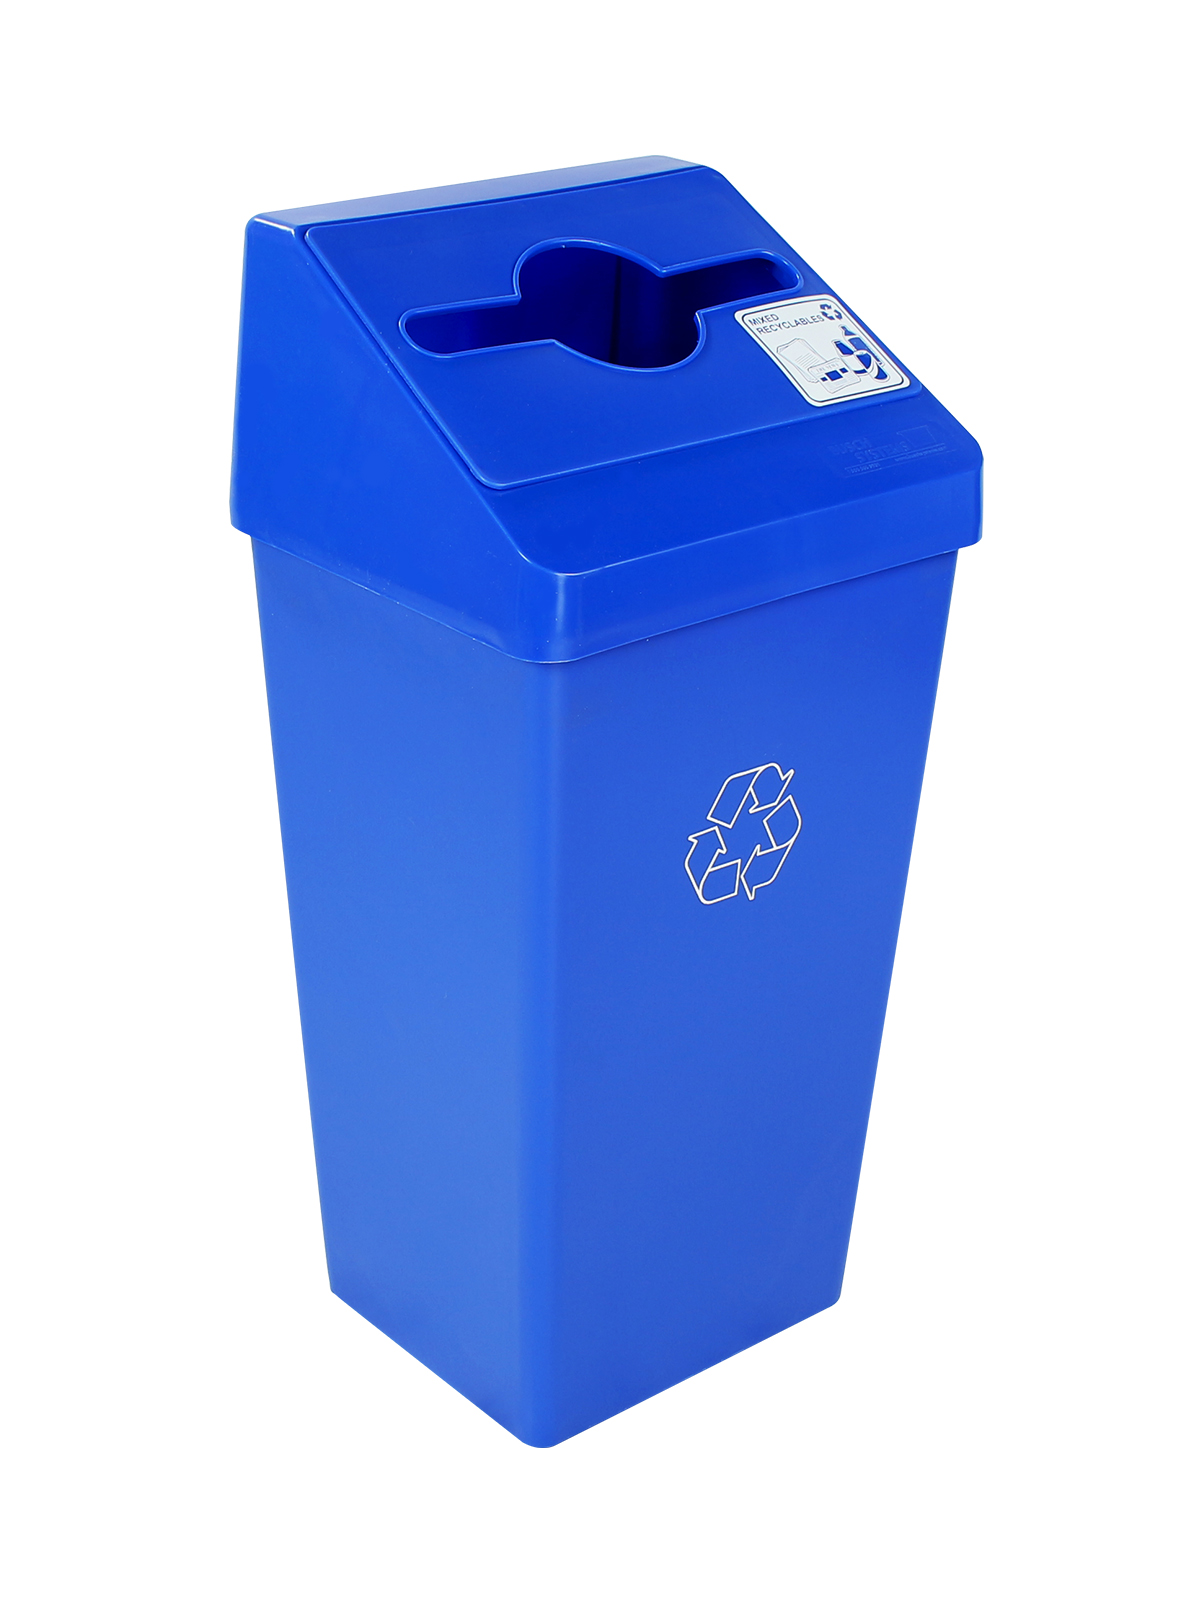 SMART SORT - SINGLE - MIXED - BLUE - MIXED RECYCLABLES title=